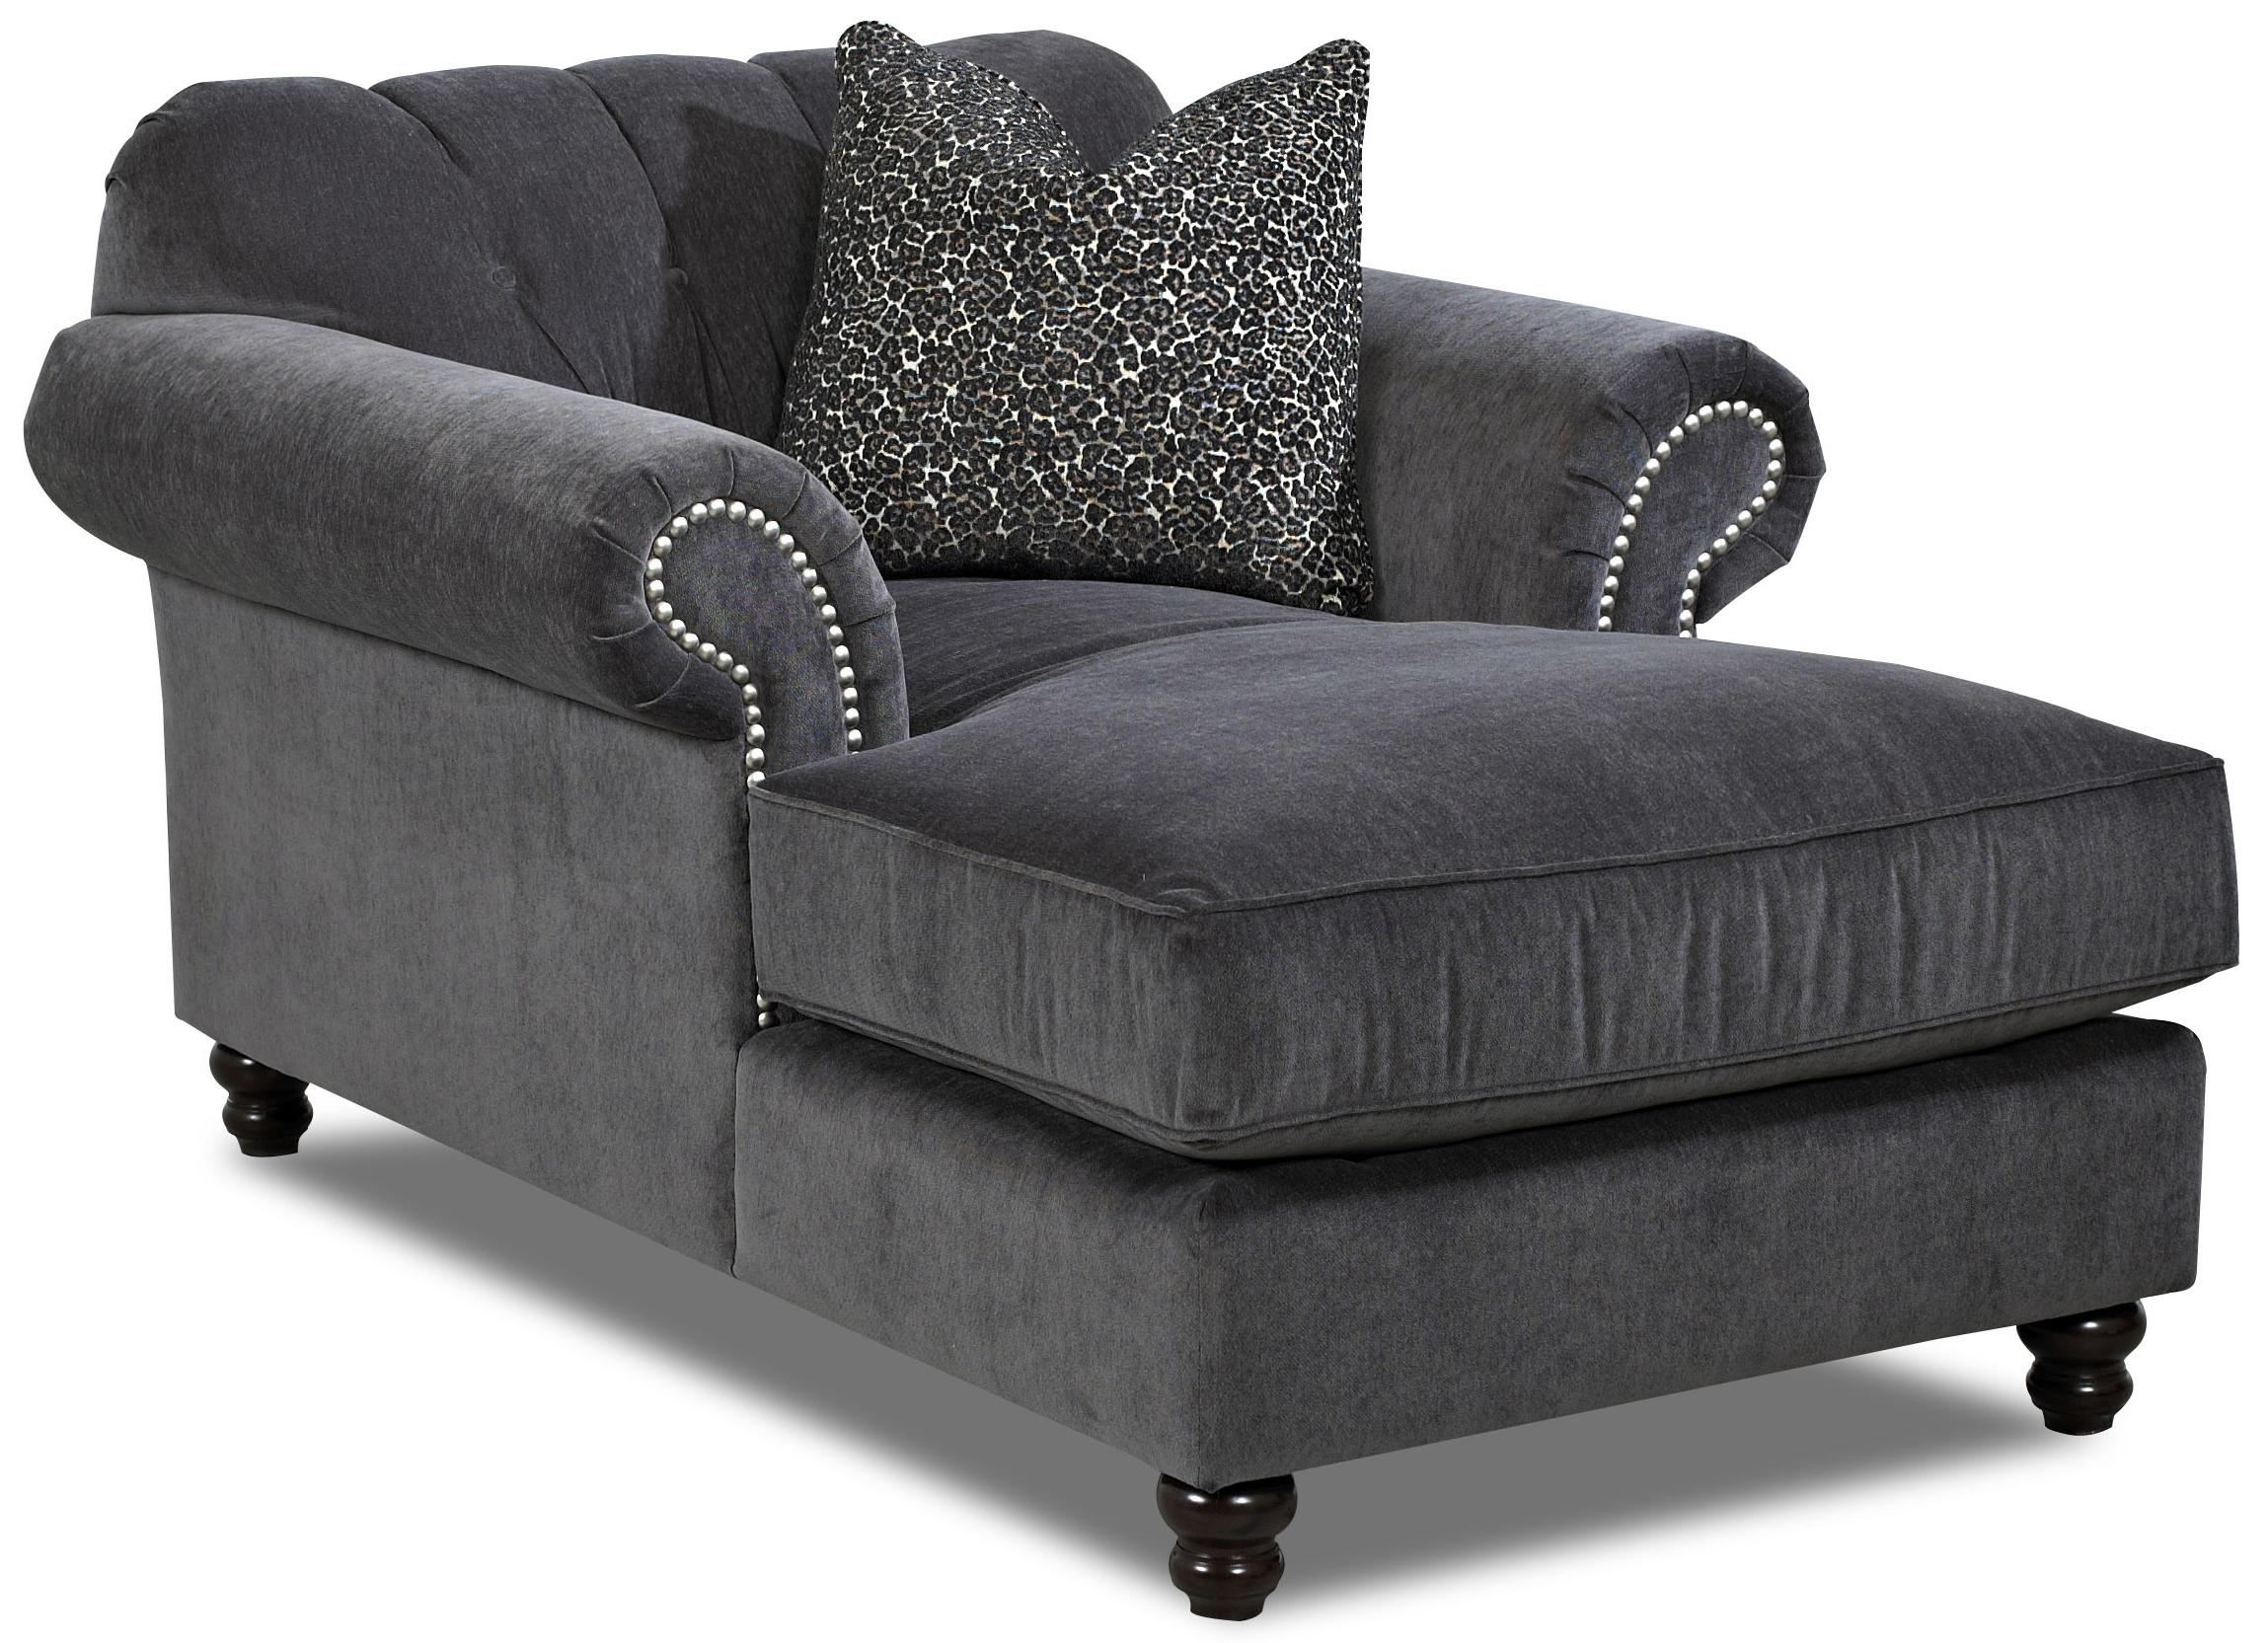 Klaussner flynn traditional chaise with button tufted back for Button tufted chaise